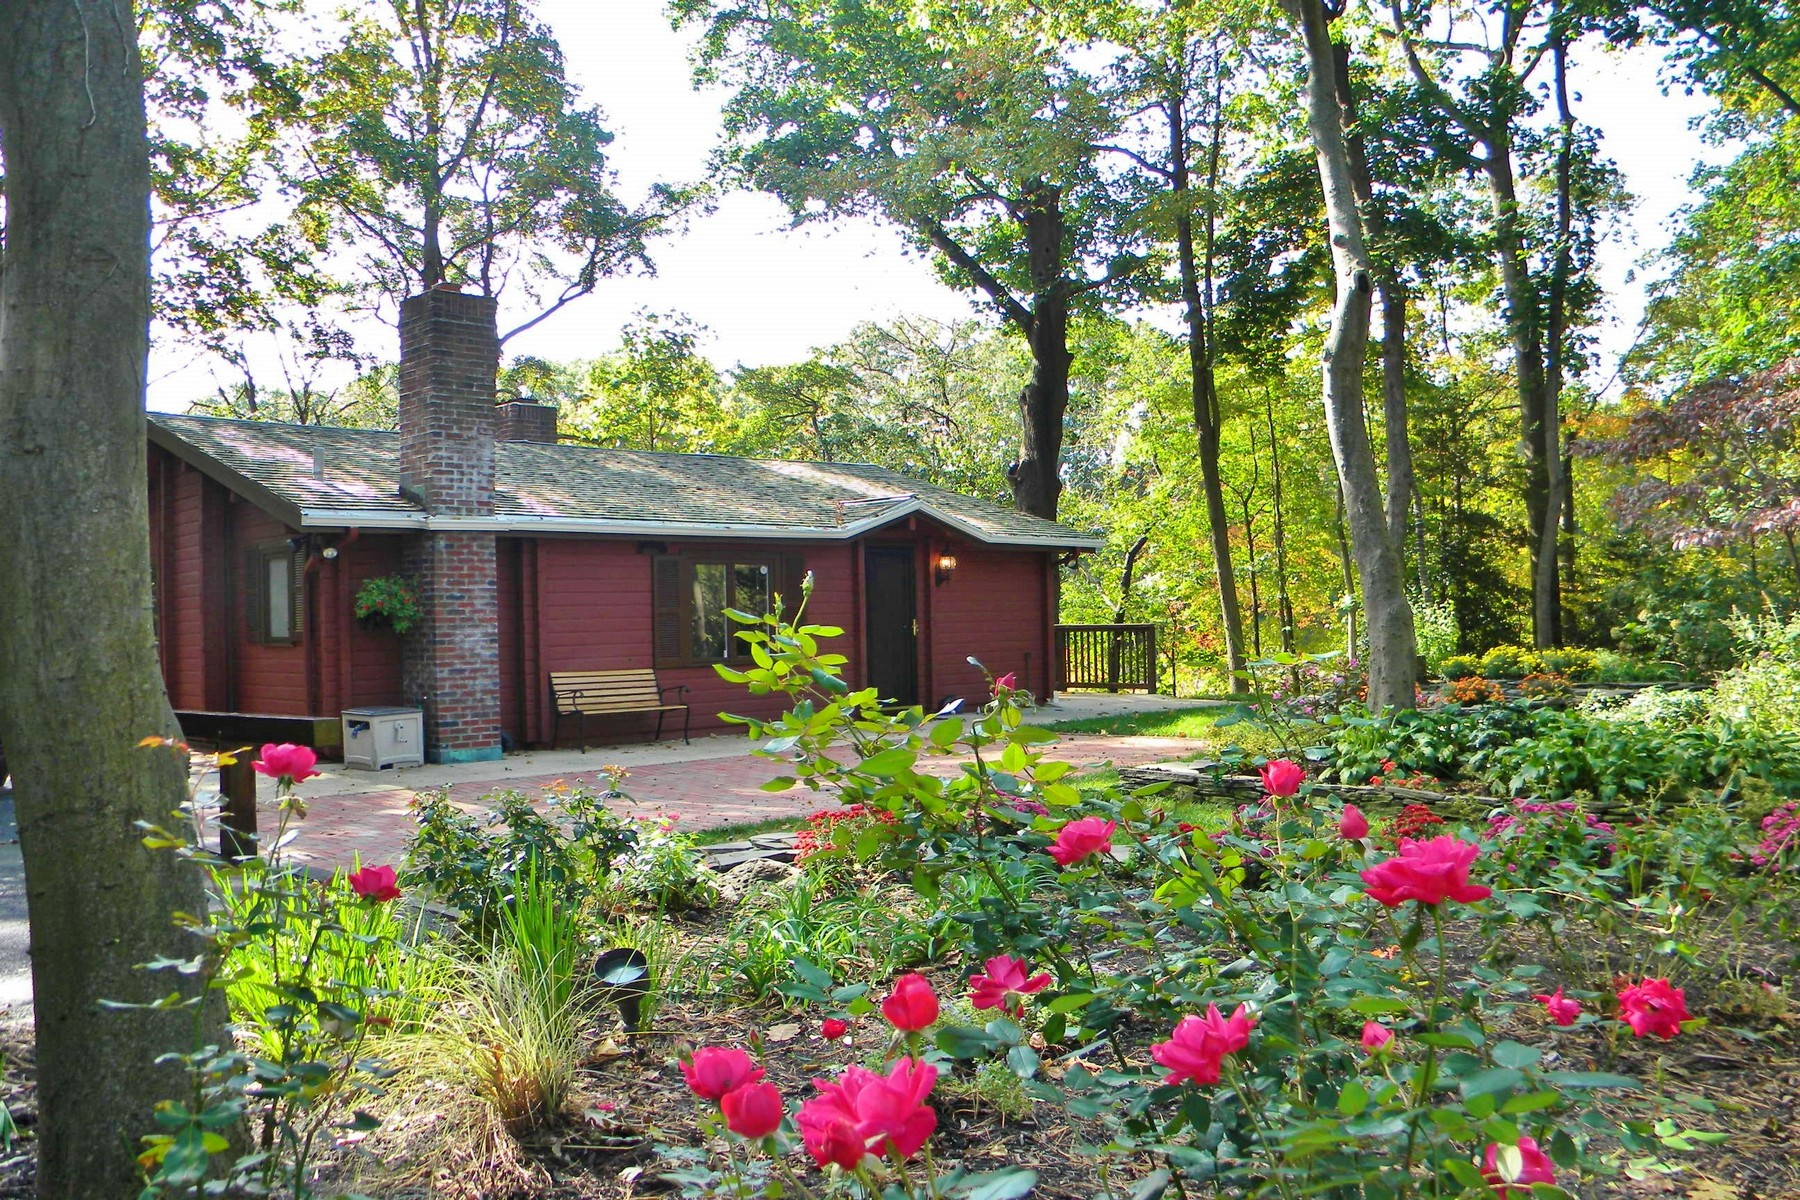 Maison unifamiliale pour l à louer à Unique Show Stopping Log Cabin Style Carriage House 24-A Blossom Cove Rd A Red Bank, New Jersey 07701 États-Unis